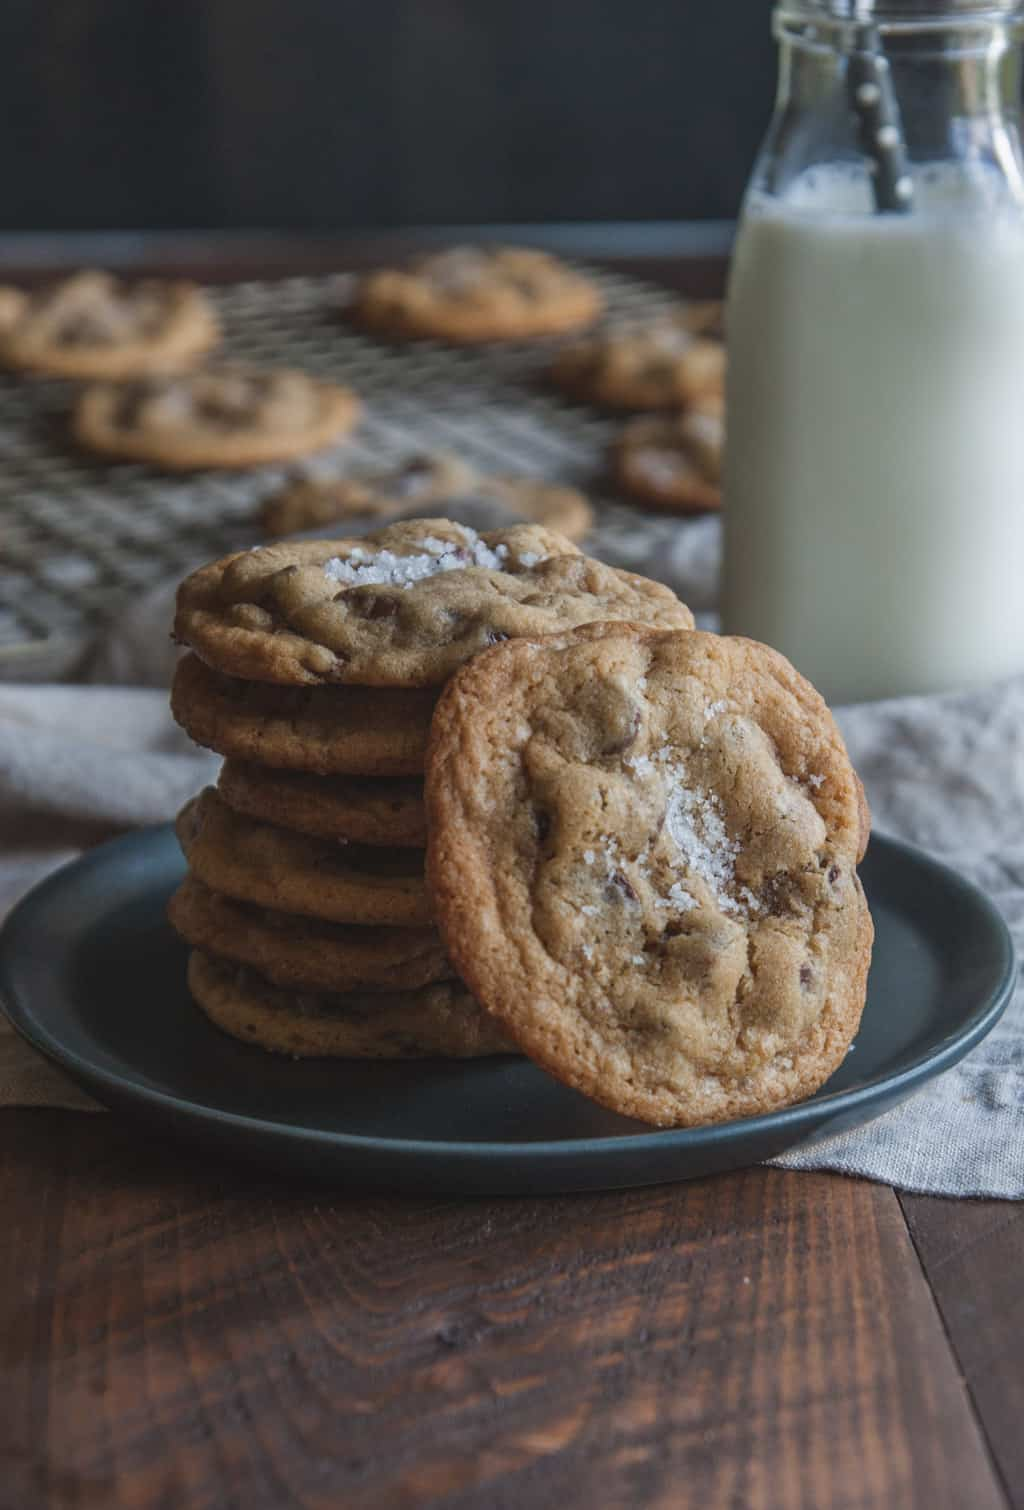 The most amazing salted caramel chocolate chip cookies